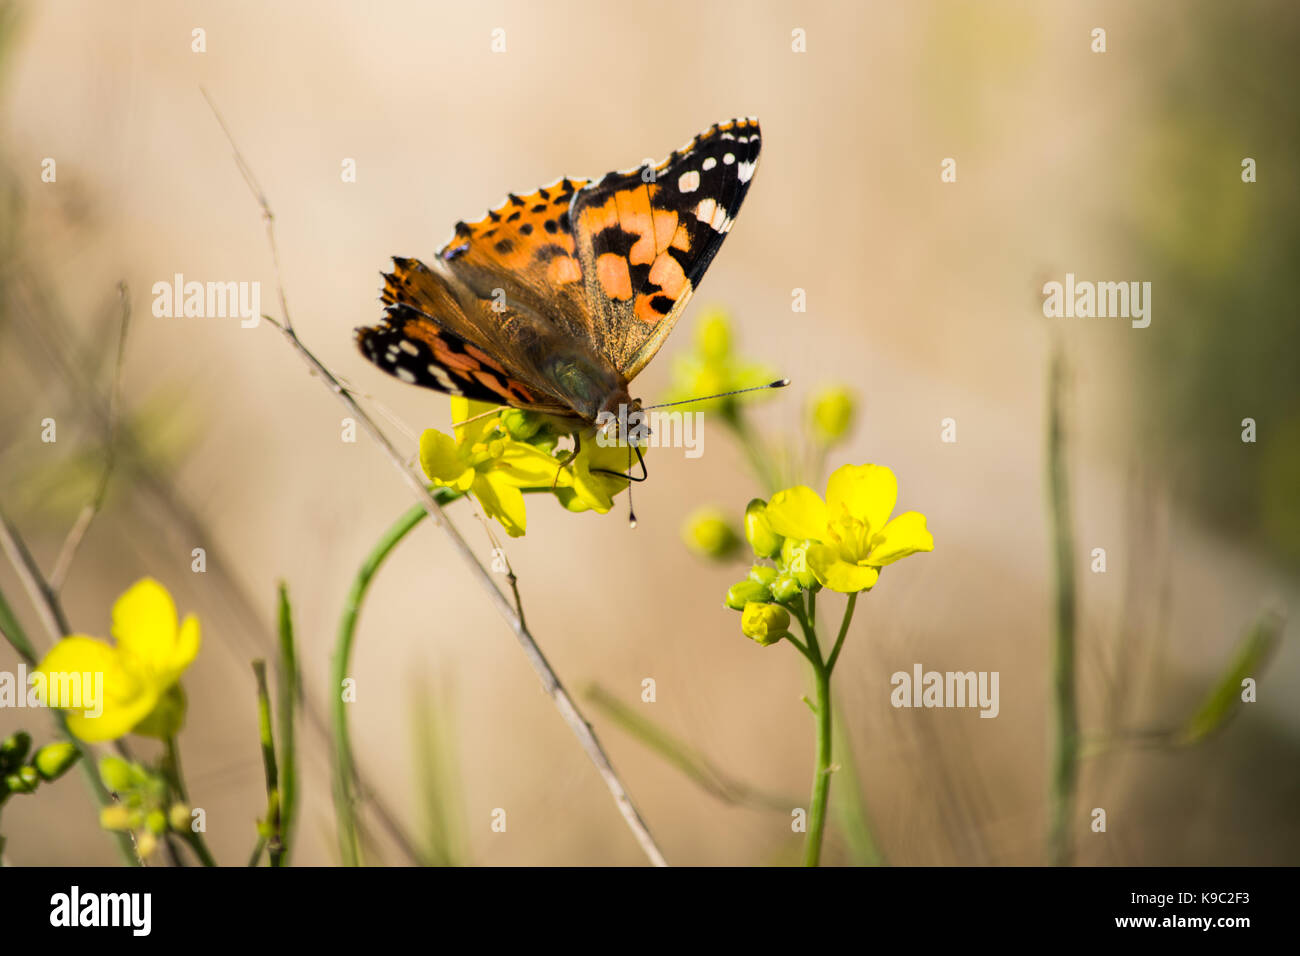 A Red Admiral Butterfly, Vanessa cardui, extracting pollen from a Perennial Wall Rocket, Diplotaxis tenuifolia, - Stock Image